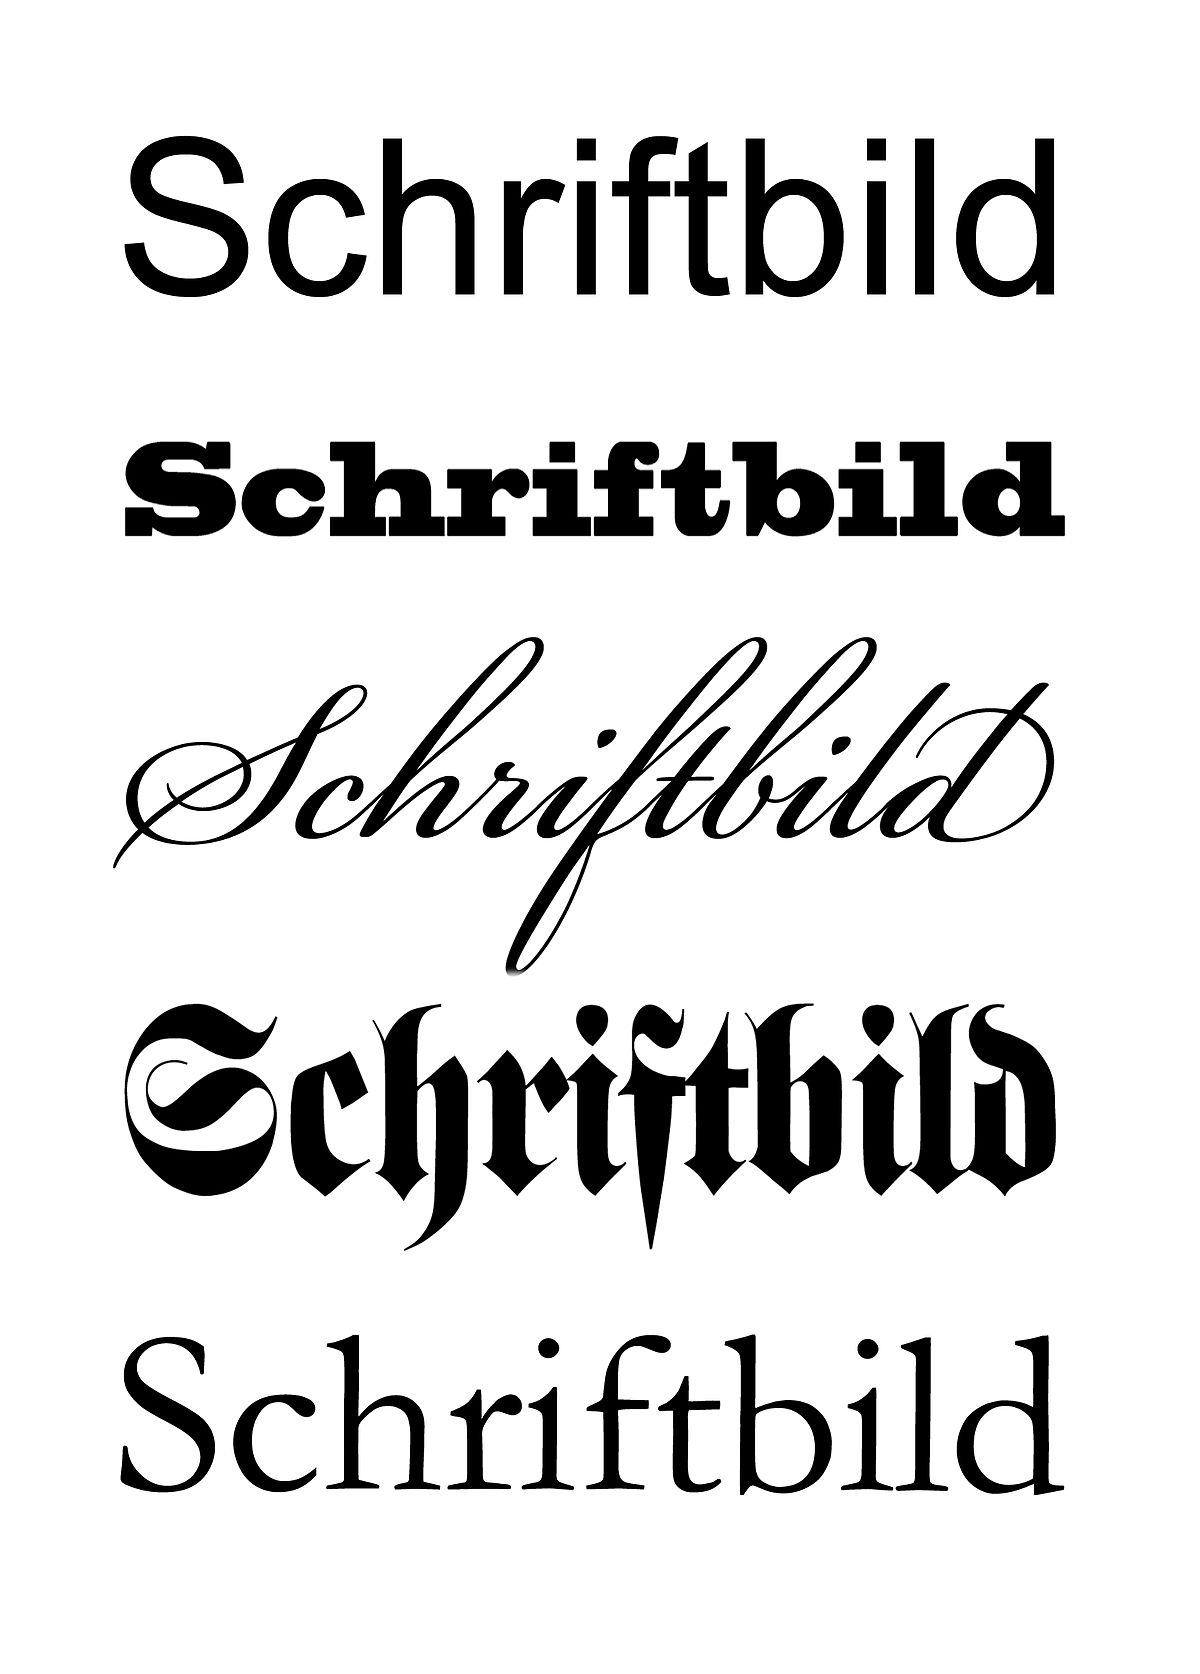 graphic regarding Free Printable Fonts identify Font - Wikipedia